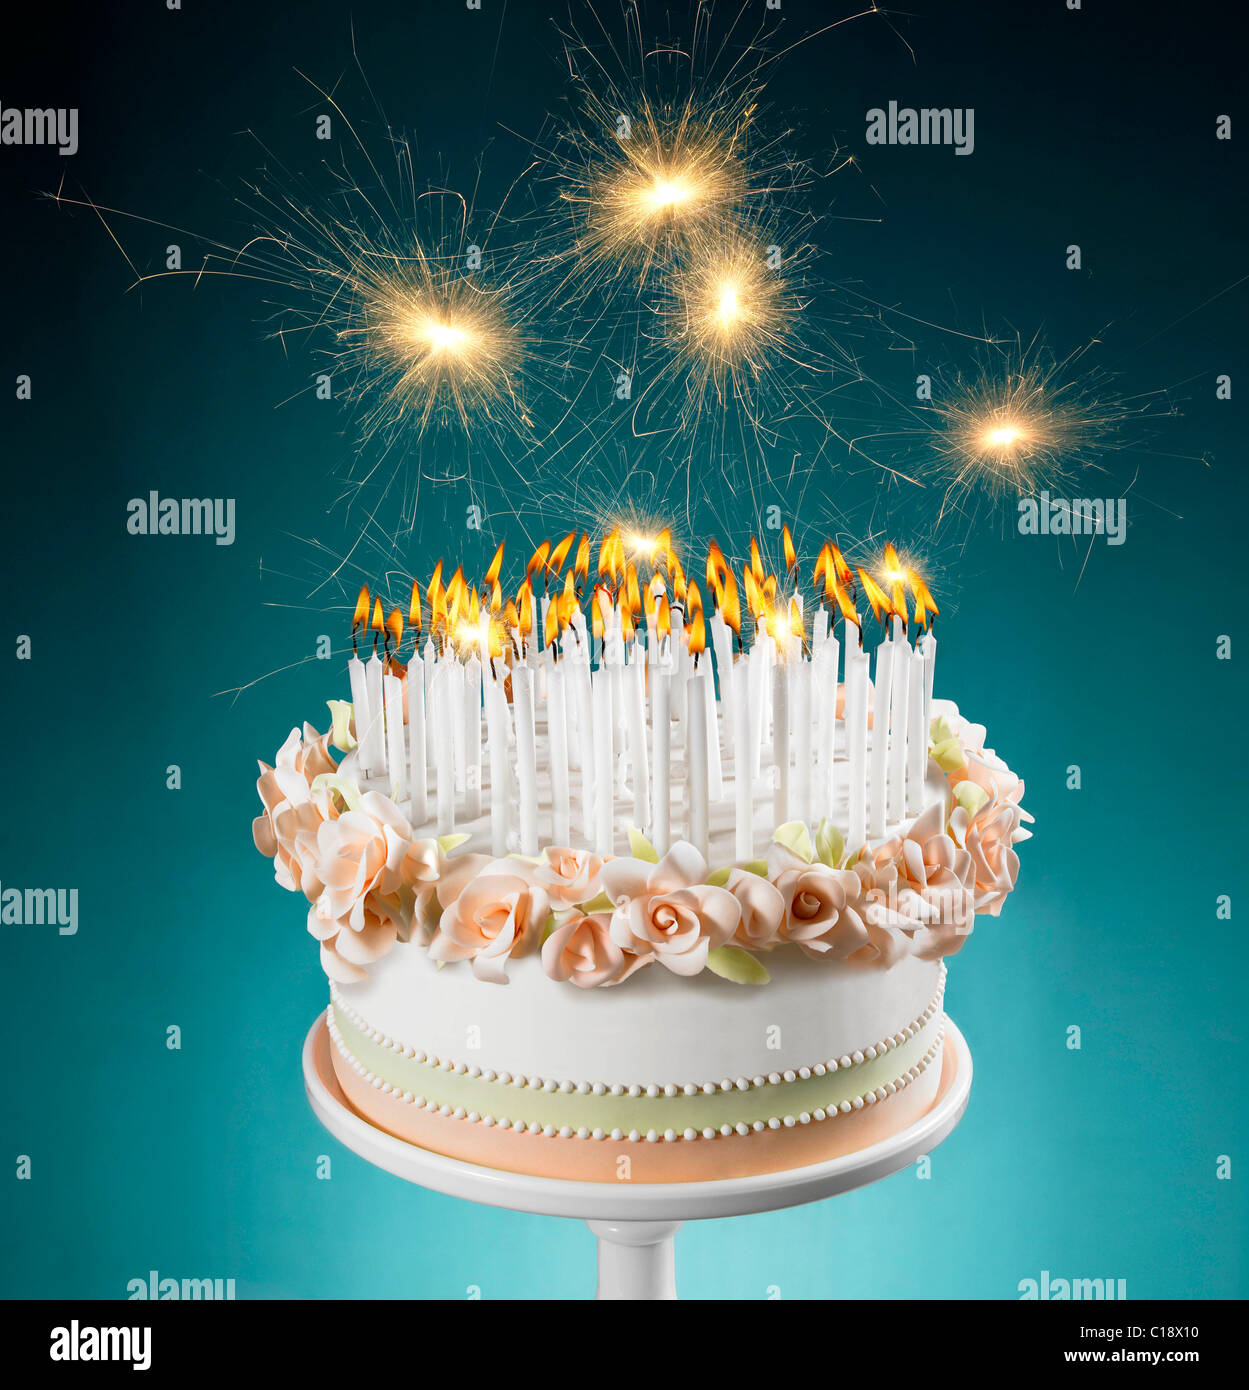 Birthday cake with lots of burning candles - Stock Image